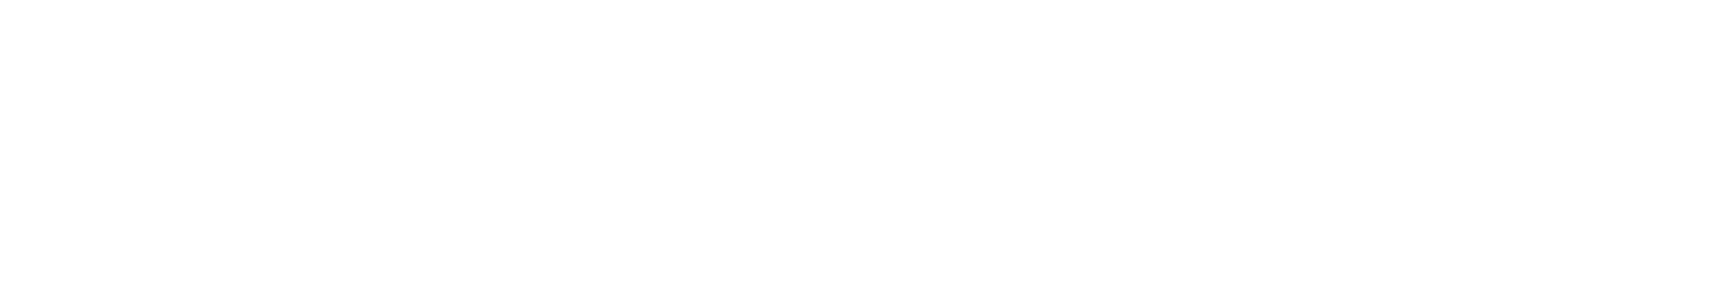 the retreat-09.png